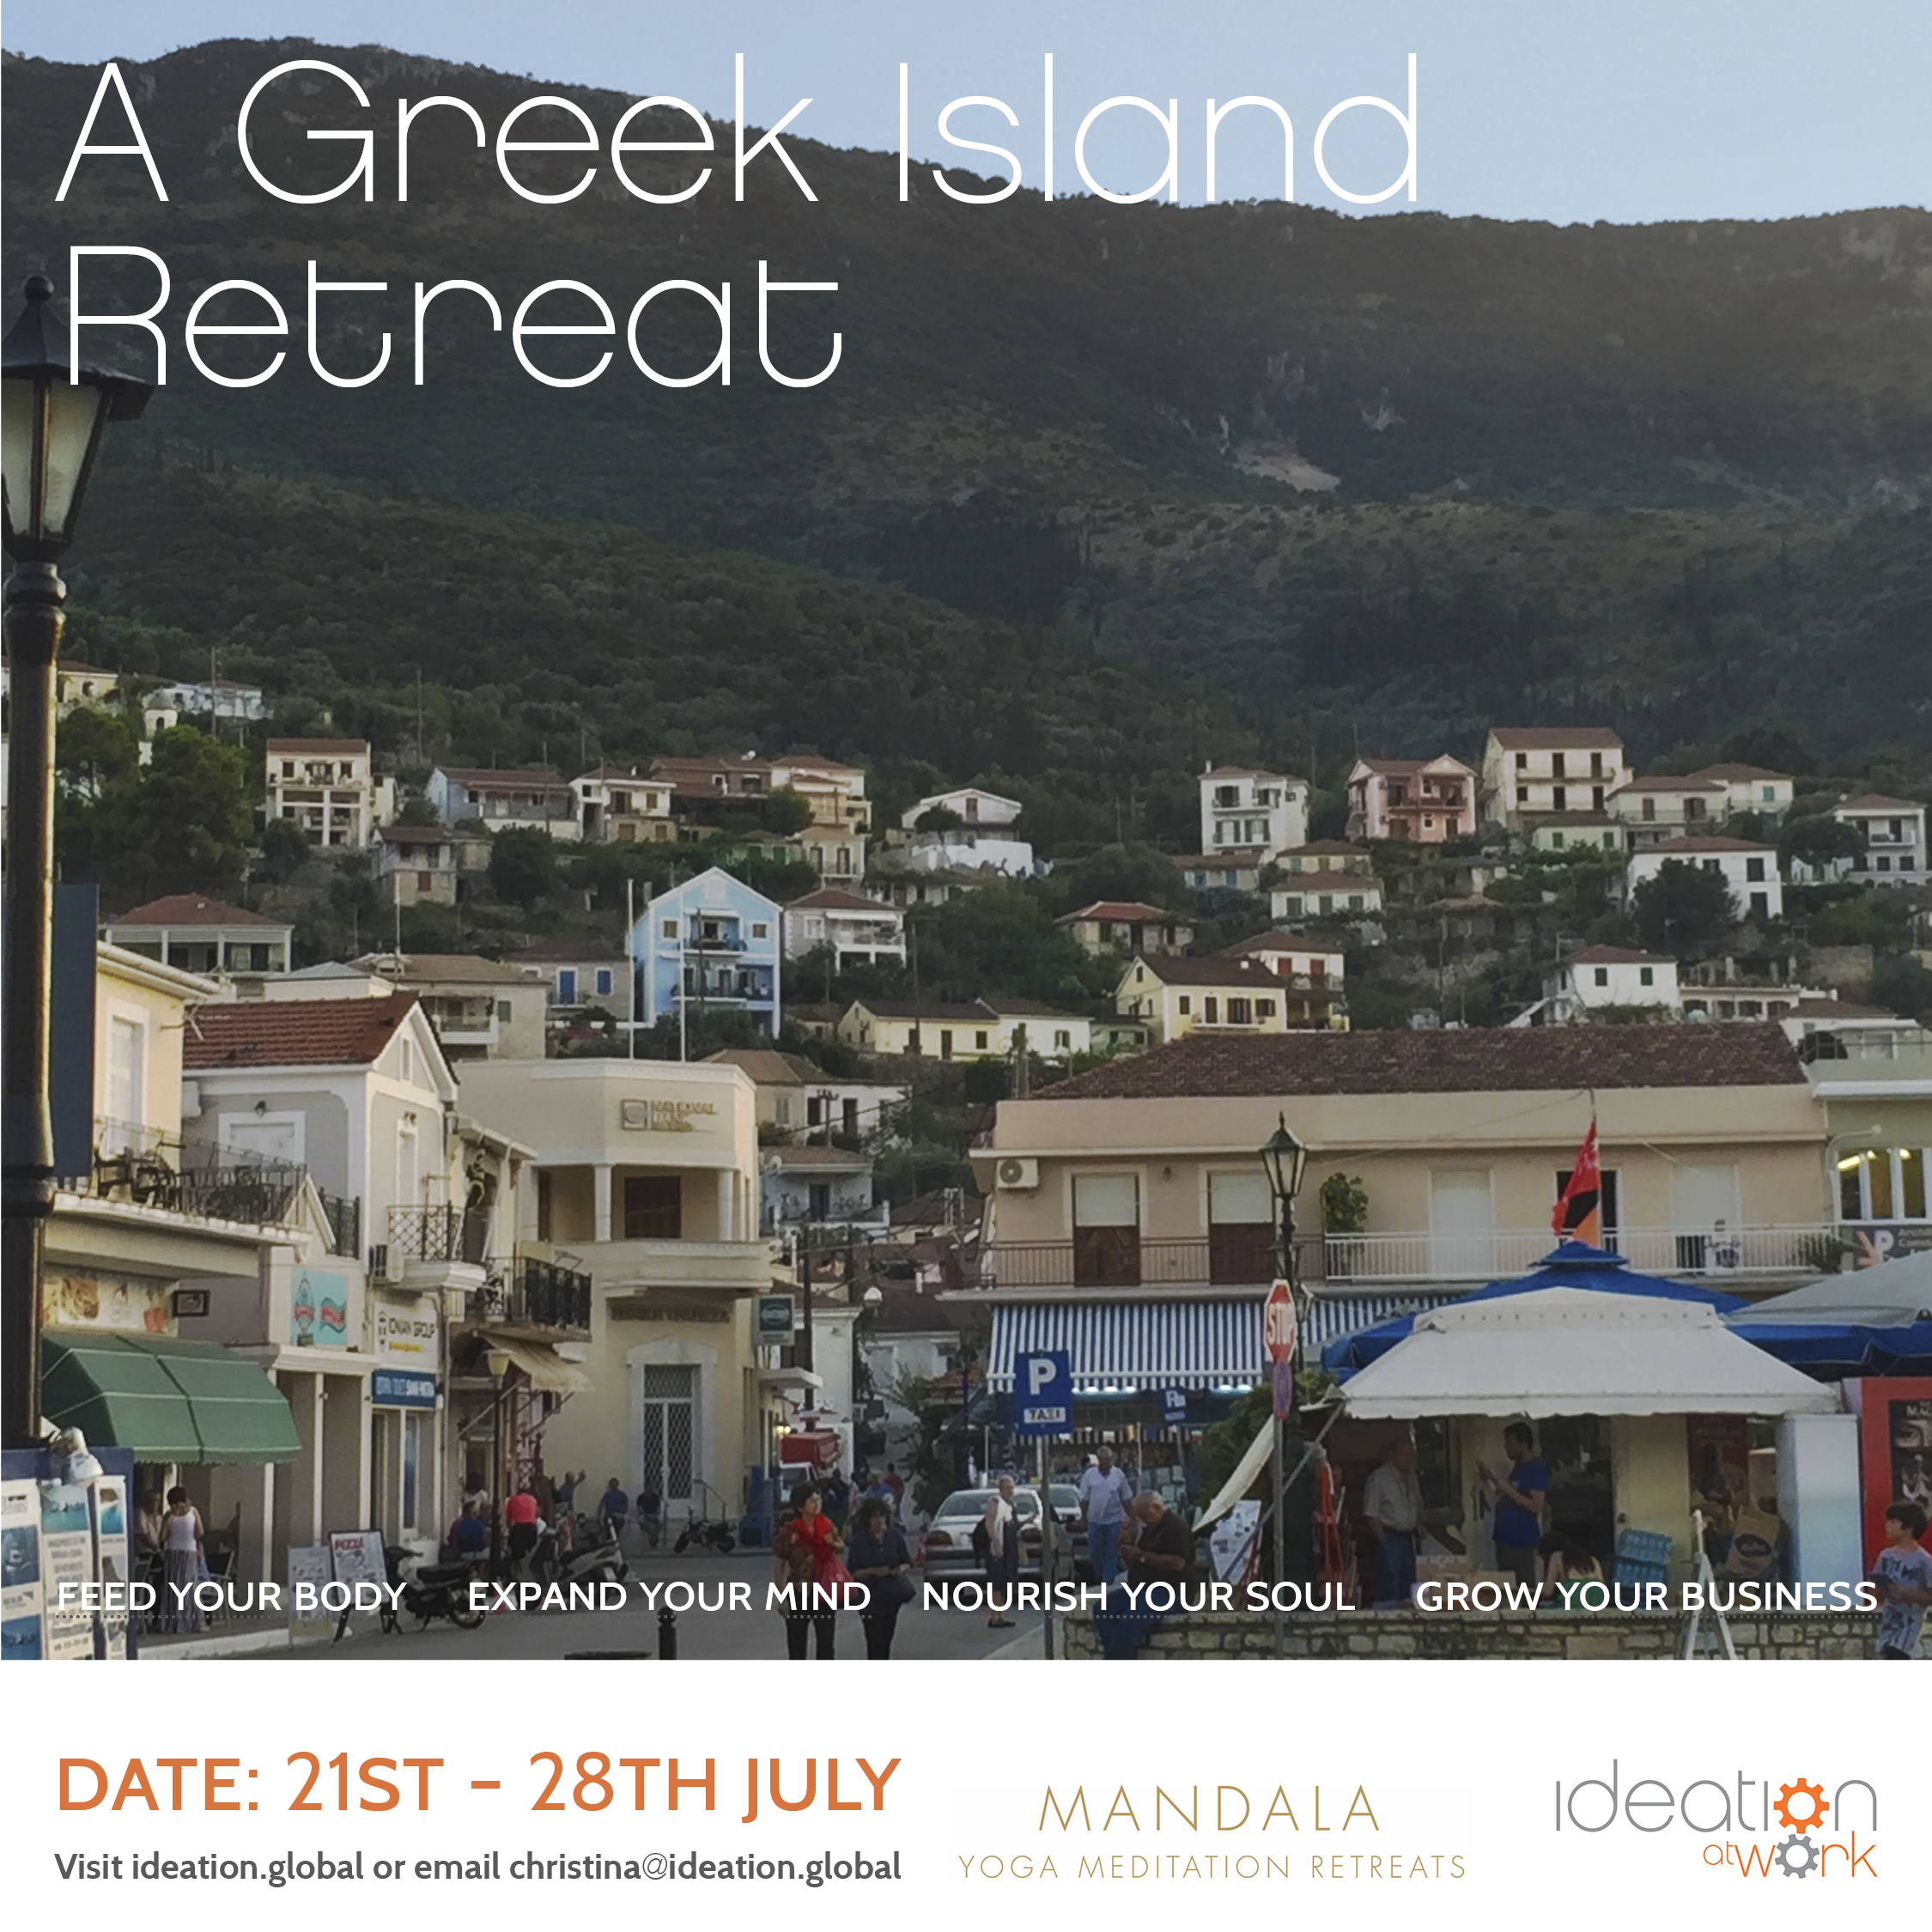 GreekIslandRetreat_InstagramV4_4.jpg